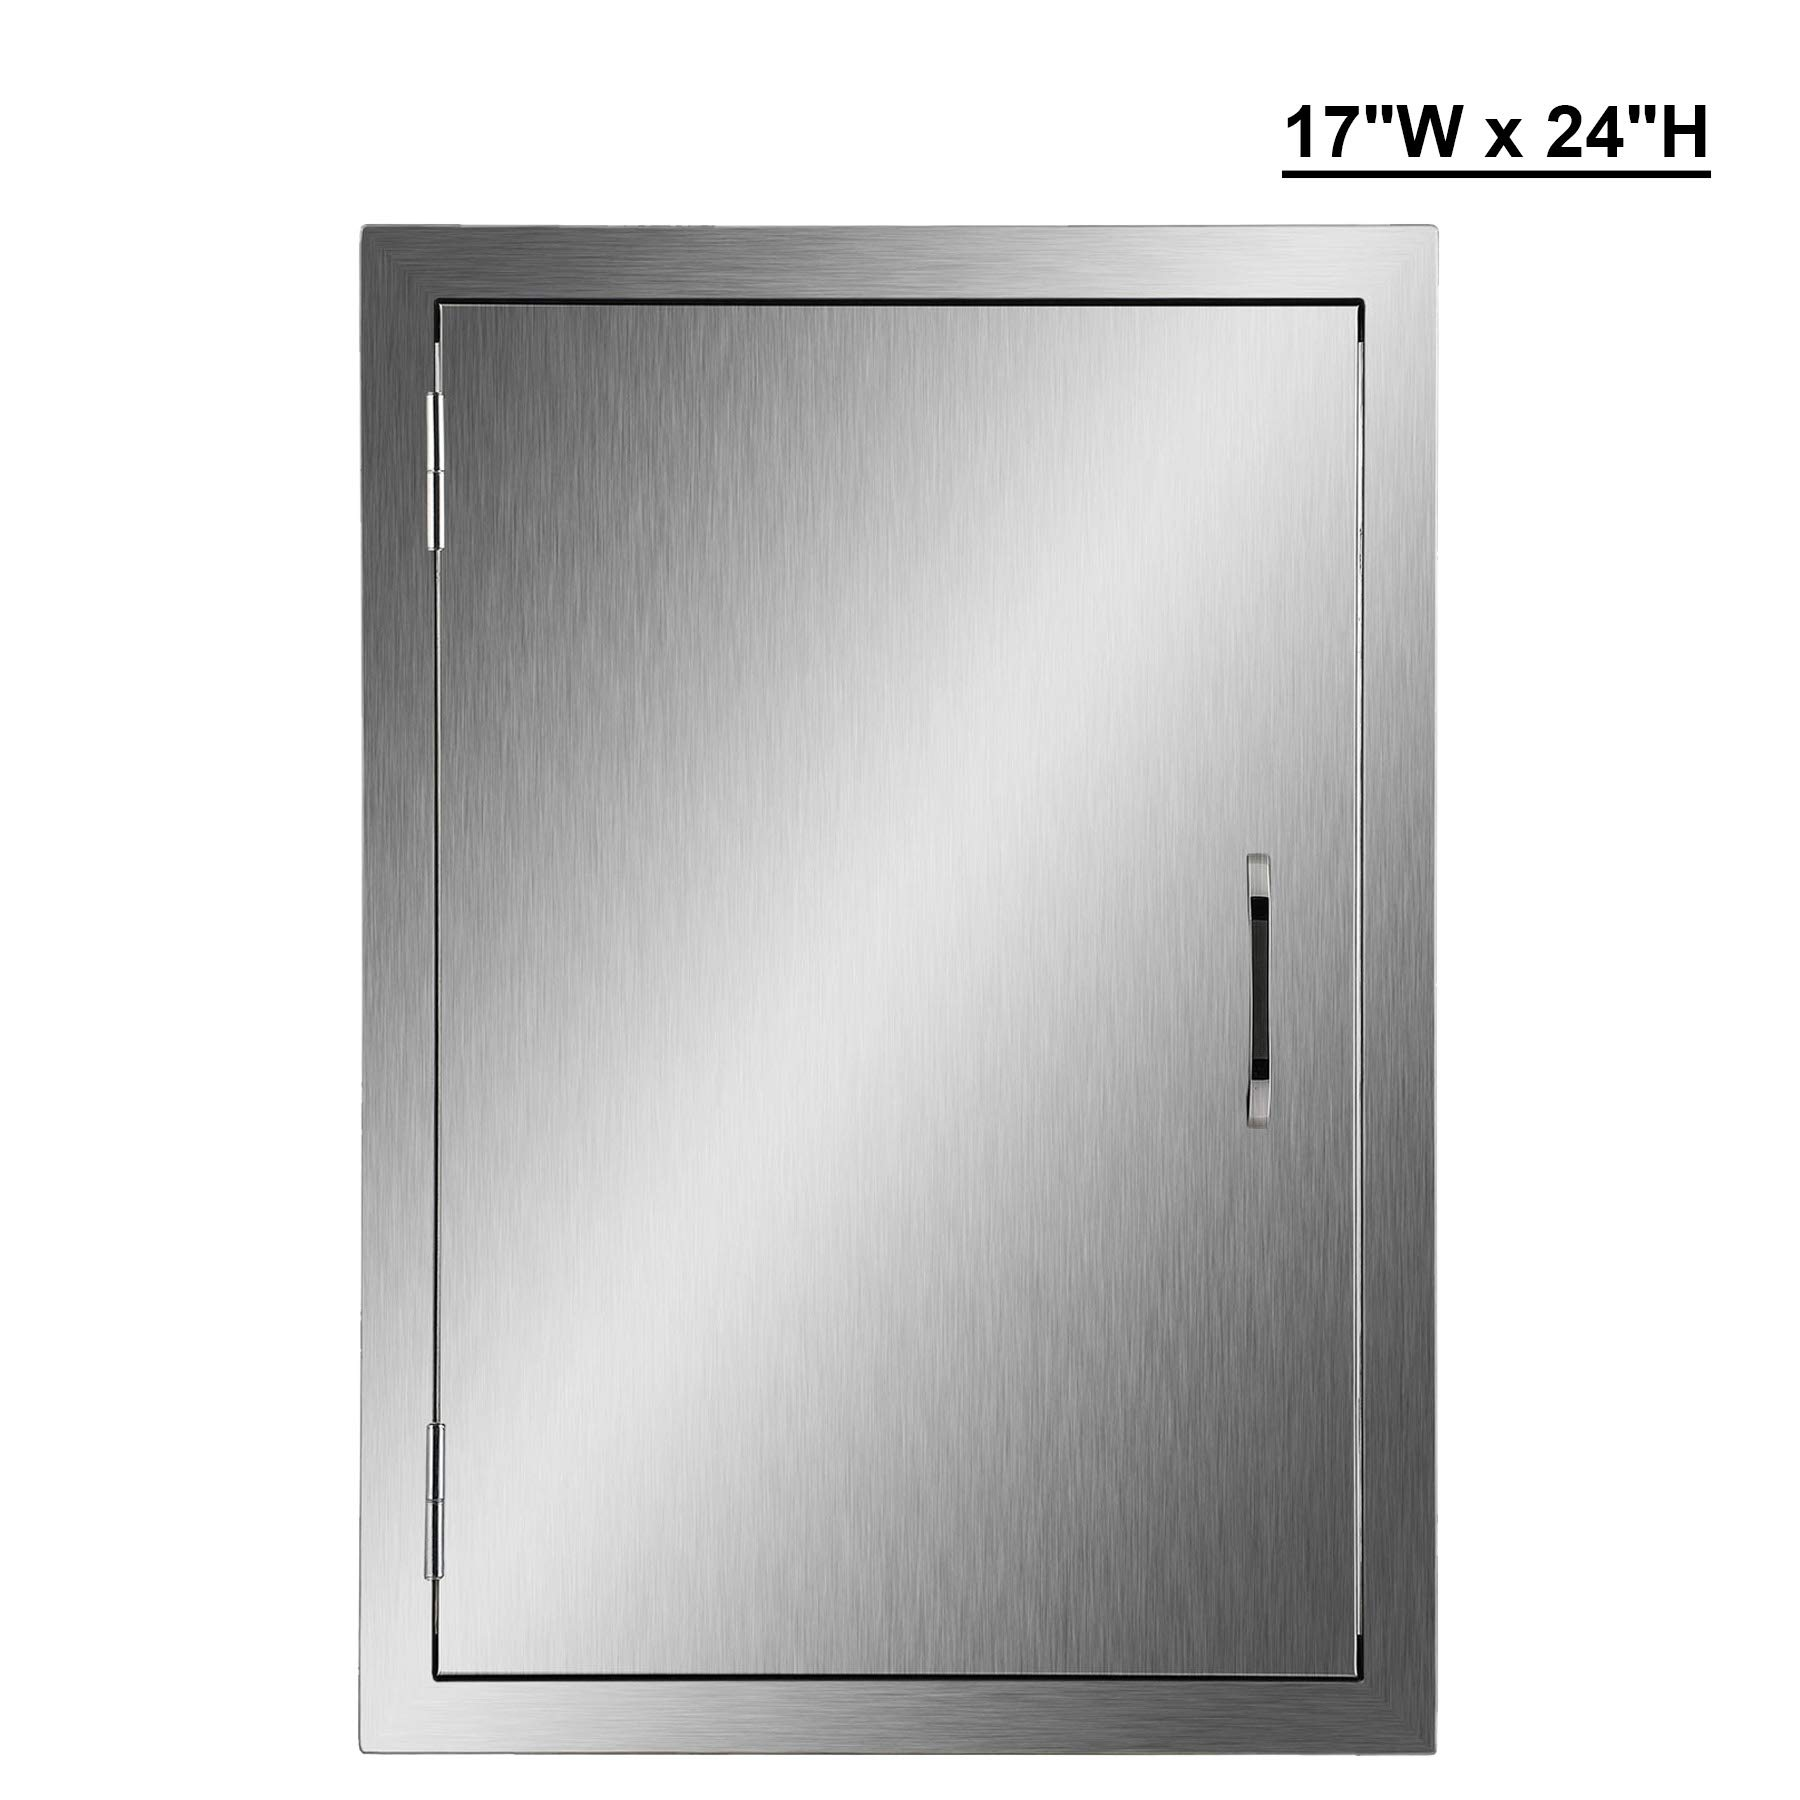 CO-Z 304 Brushed Stainless Steel BBQ Door, SS Single Access Doors for Outdoor Kitchen, Commercial BBQ Island, Grilling Station, Outside Cabinet, Barbeque Grill, Built-in by CO-Z